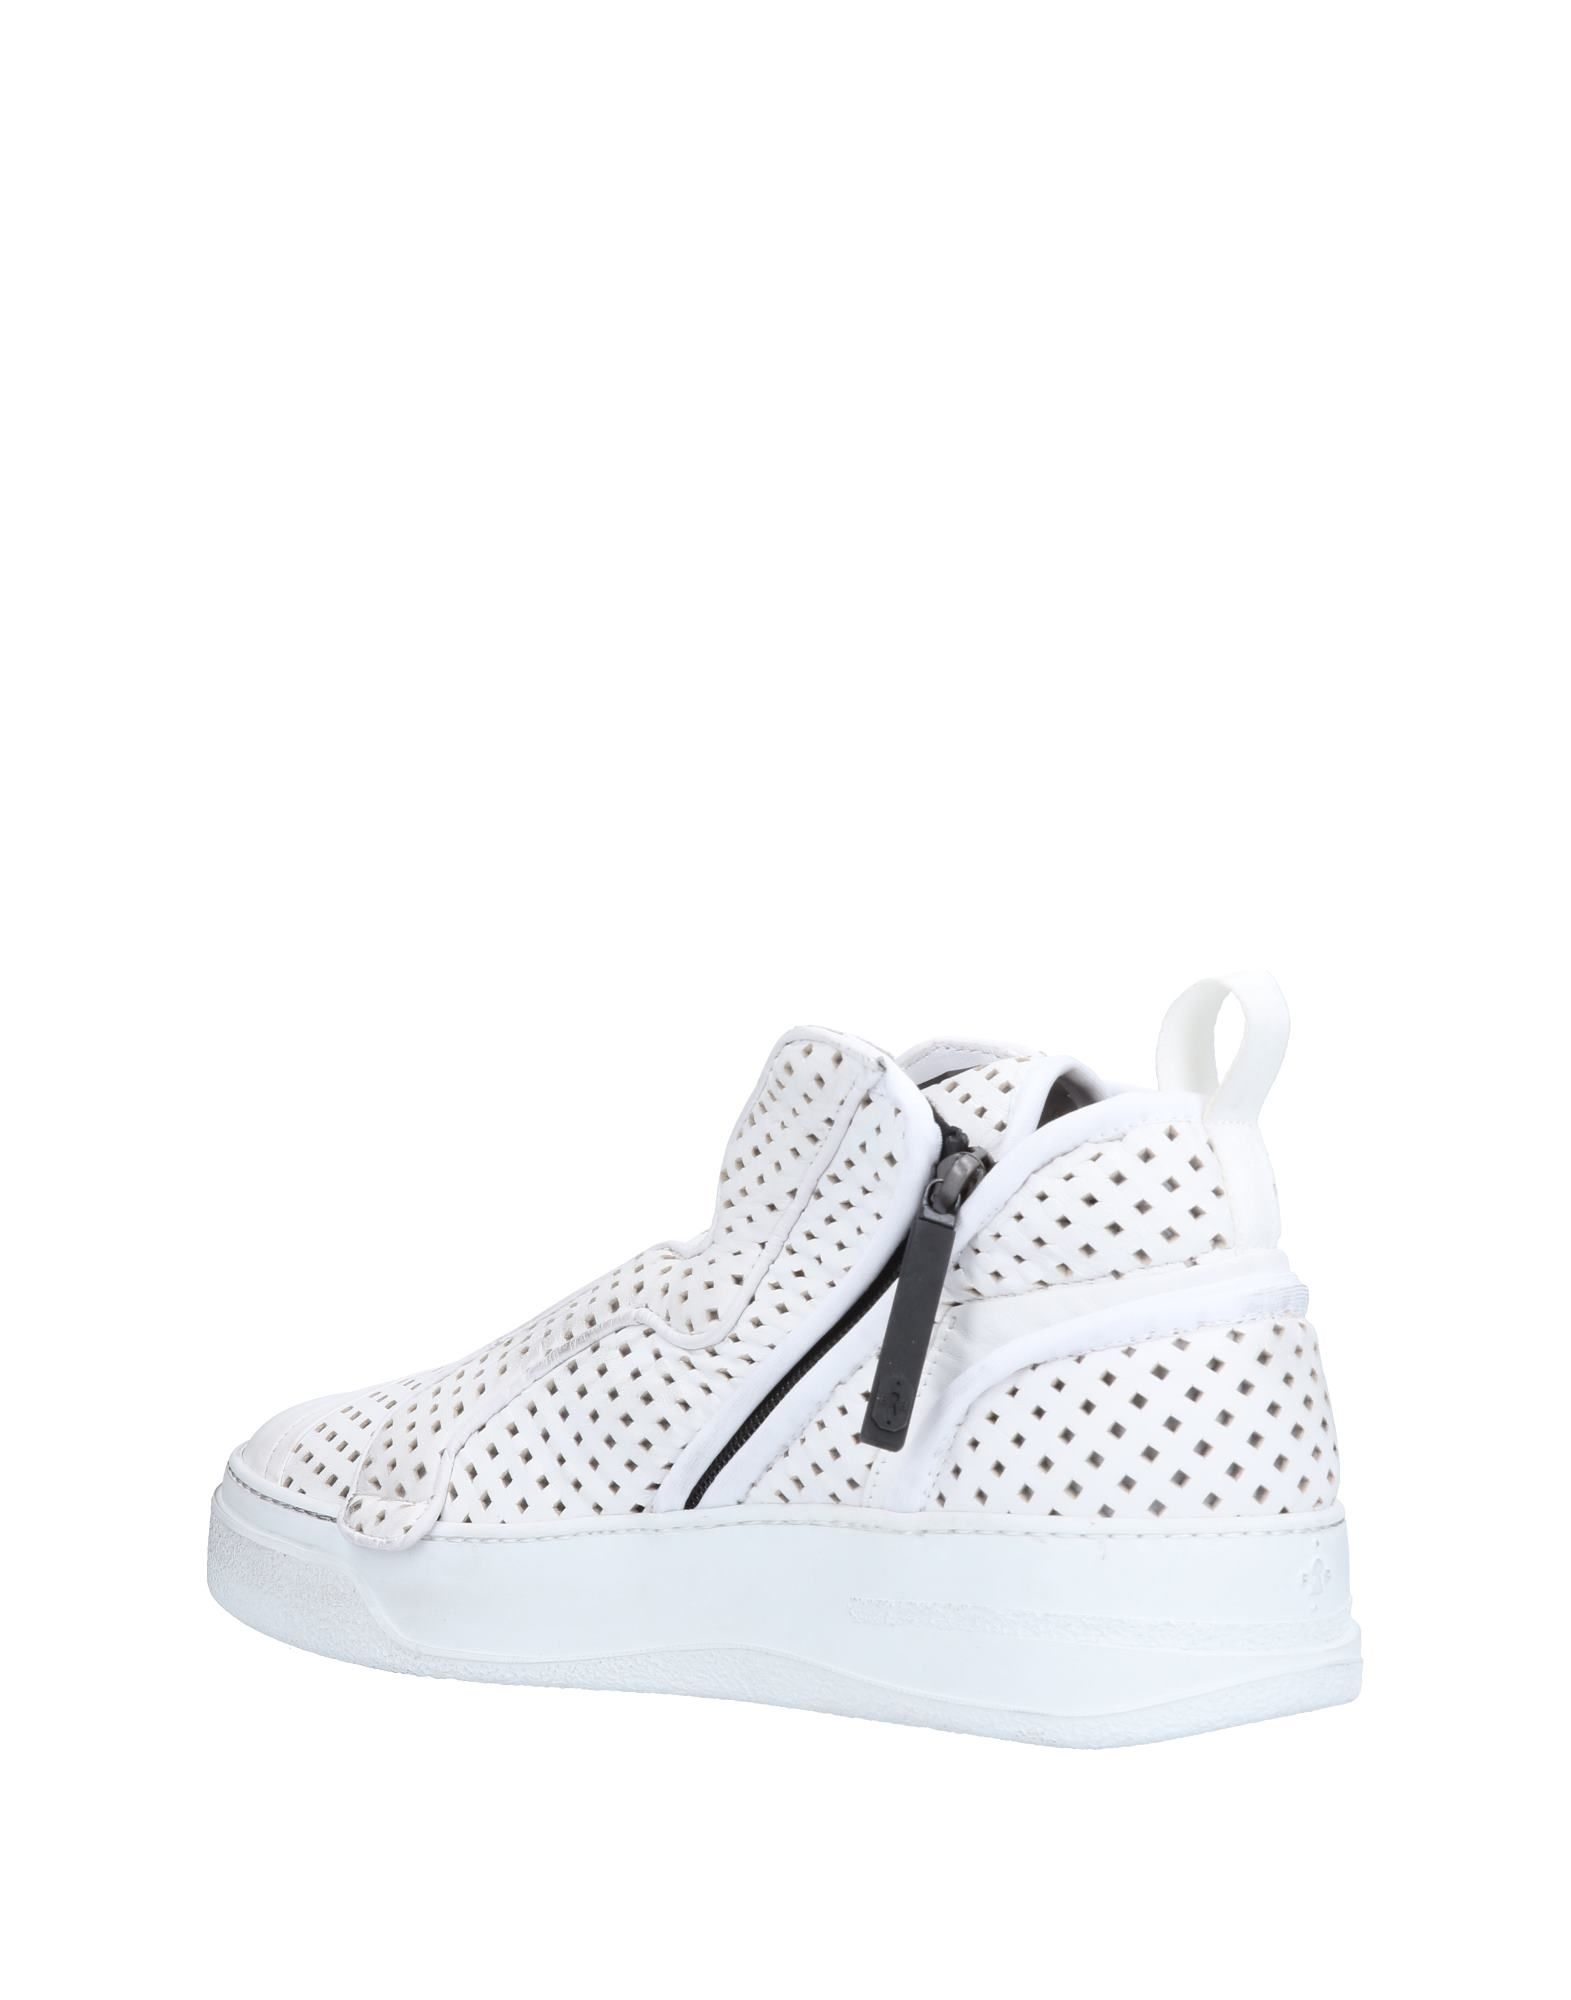 Bruno Bordese Sneakers - Men Bruno Bordese Bordese Bordese Sneakers online on  United Kingdom - 11498525FE bdc9fd